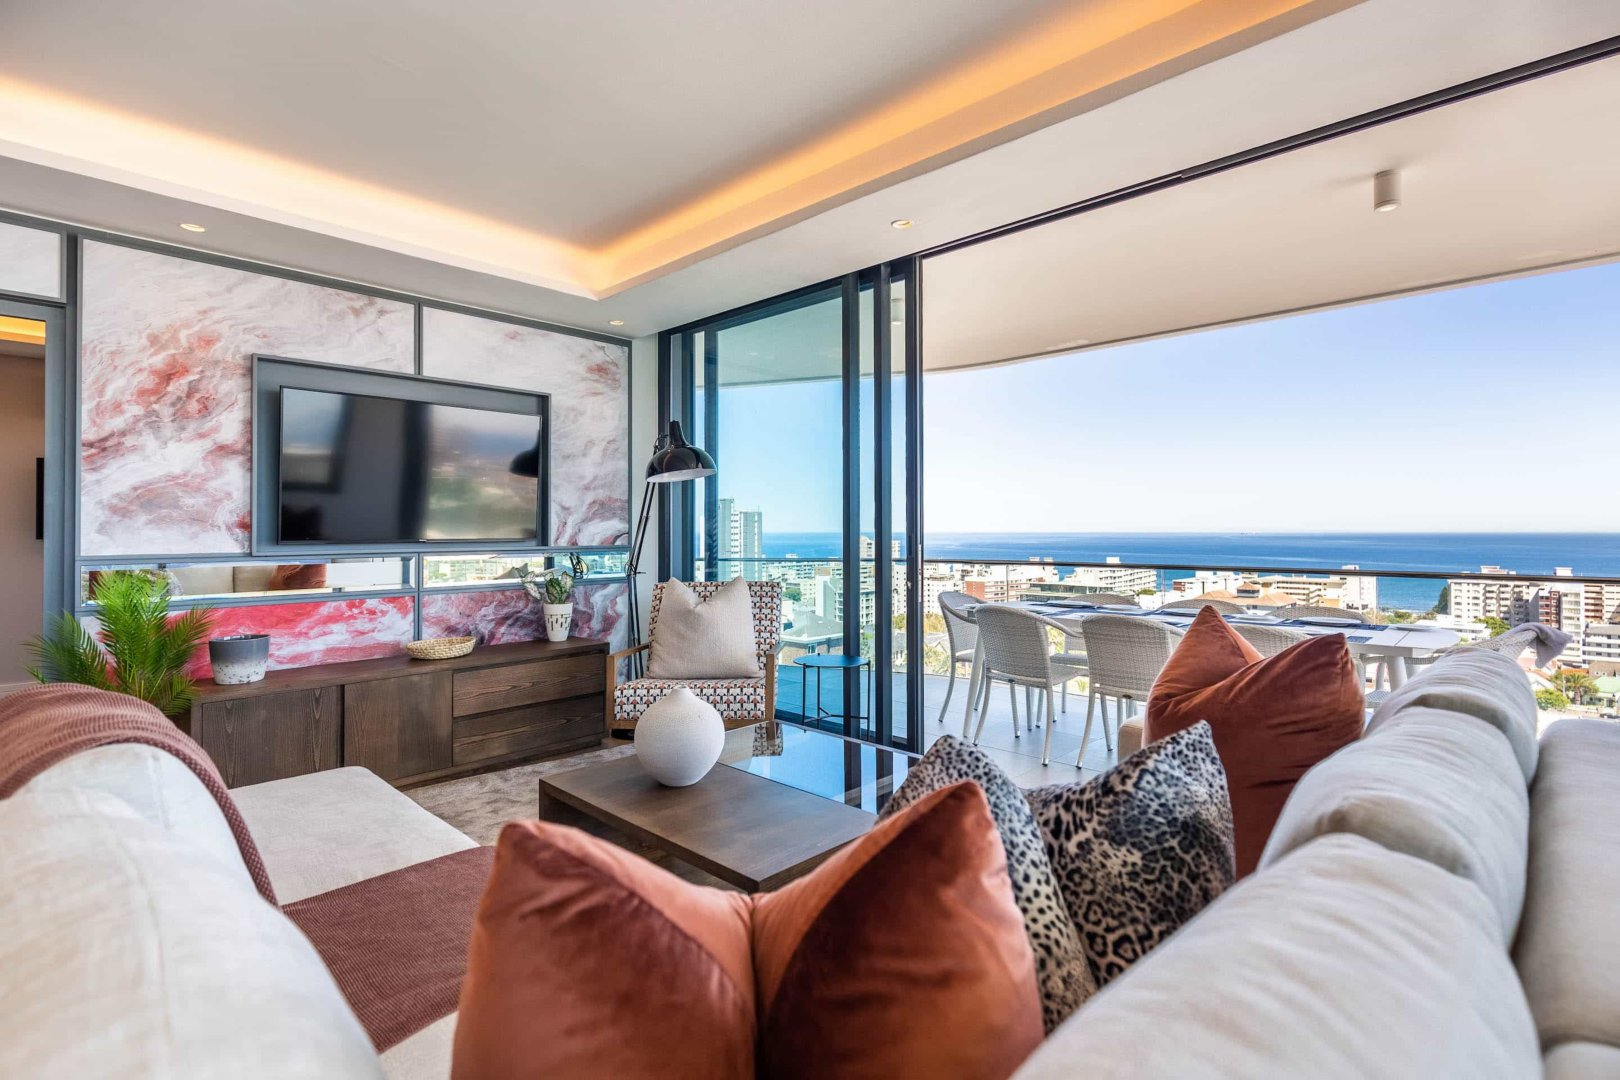 Stunning 3 Bedroom / 3.5 Bathroom Penthouse for sale in Sea Point